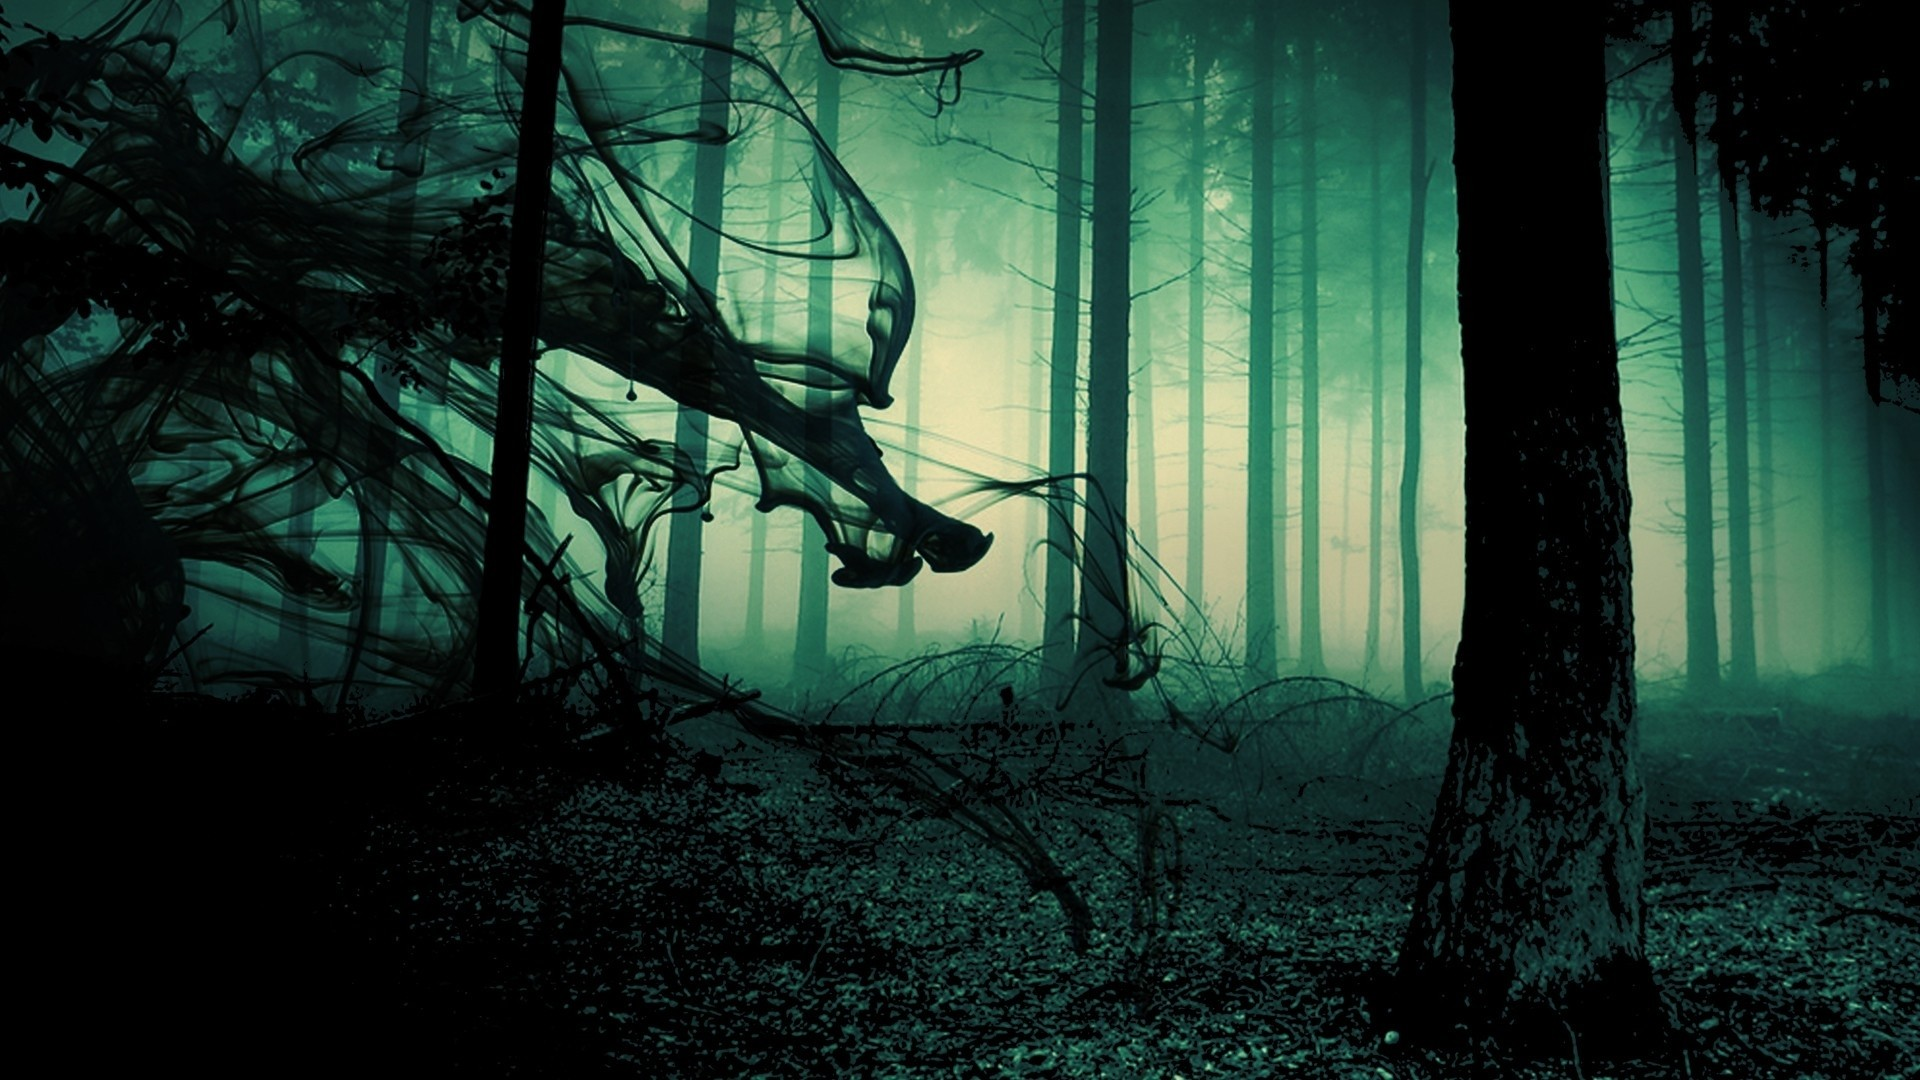 Res: 1920x1080, Gothic poe dark horror macabre scary creepy spooky occult withc demon  undead smoke abstract manipulation psychedelic nature trees forest fog mood  sunlight ...